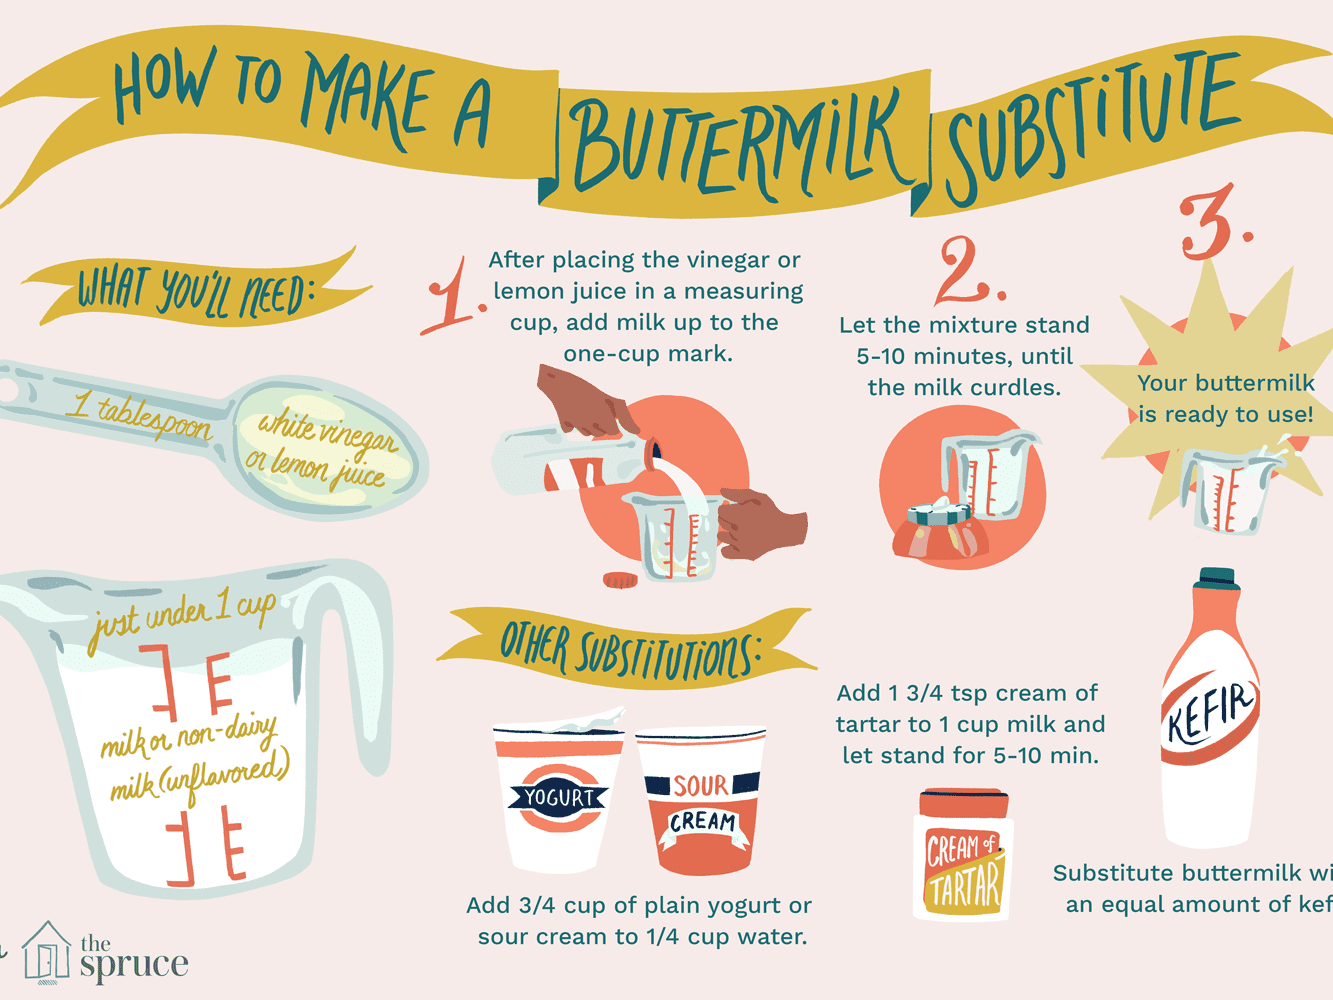 How to Make a Buttermilk Substitute